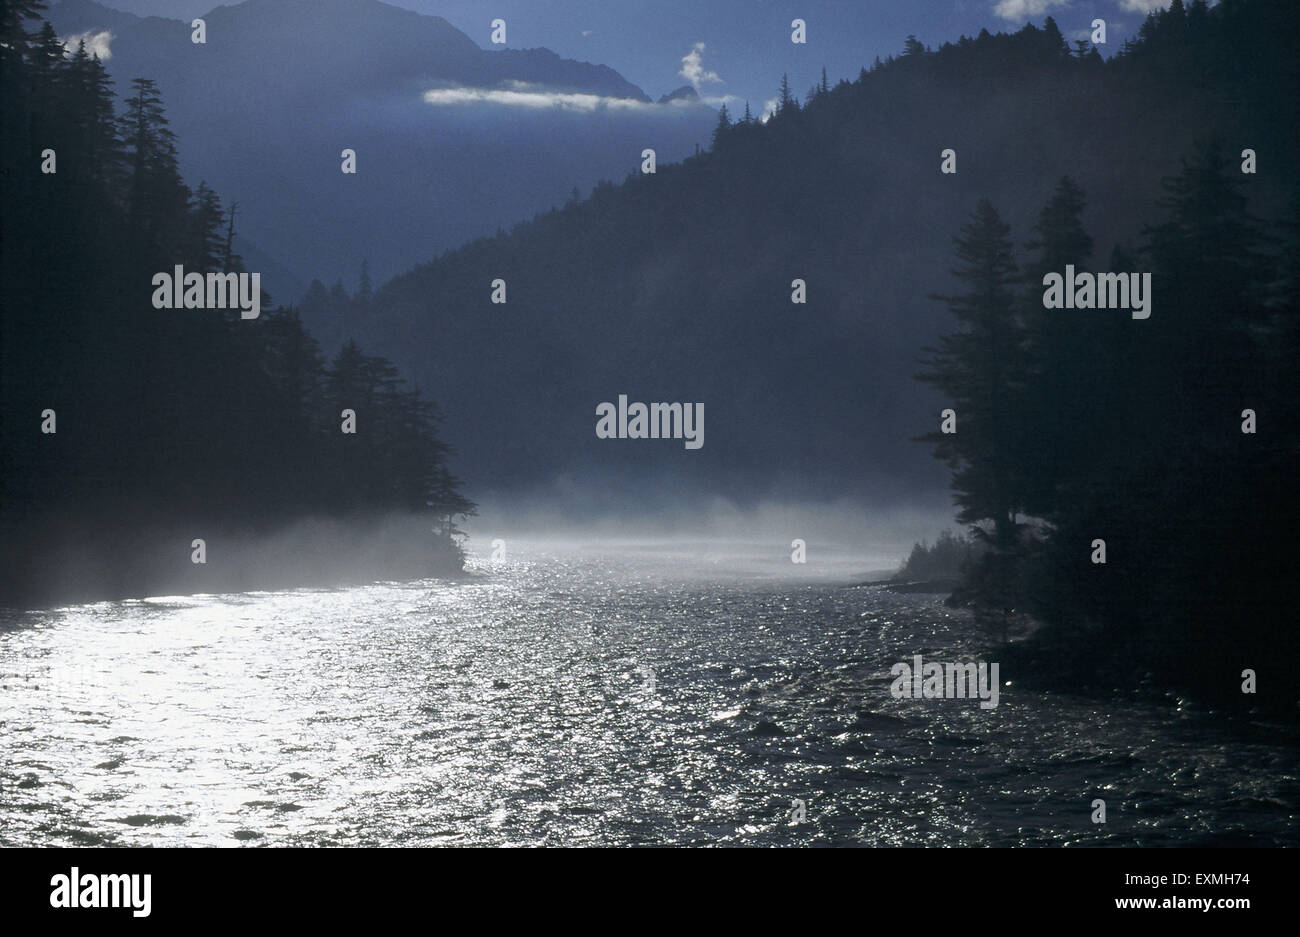 River water shining - Stock Image